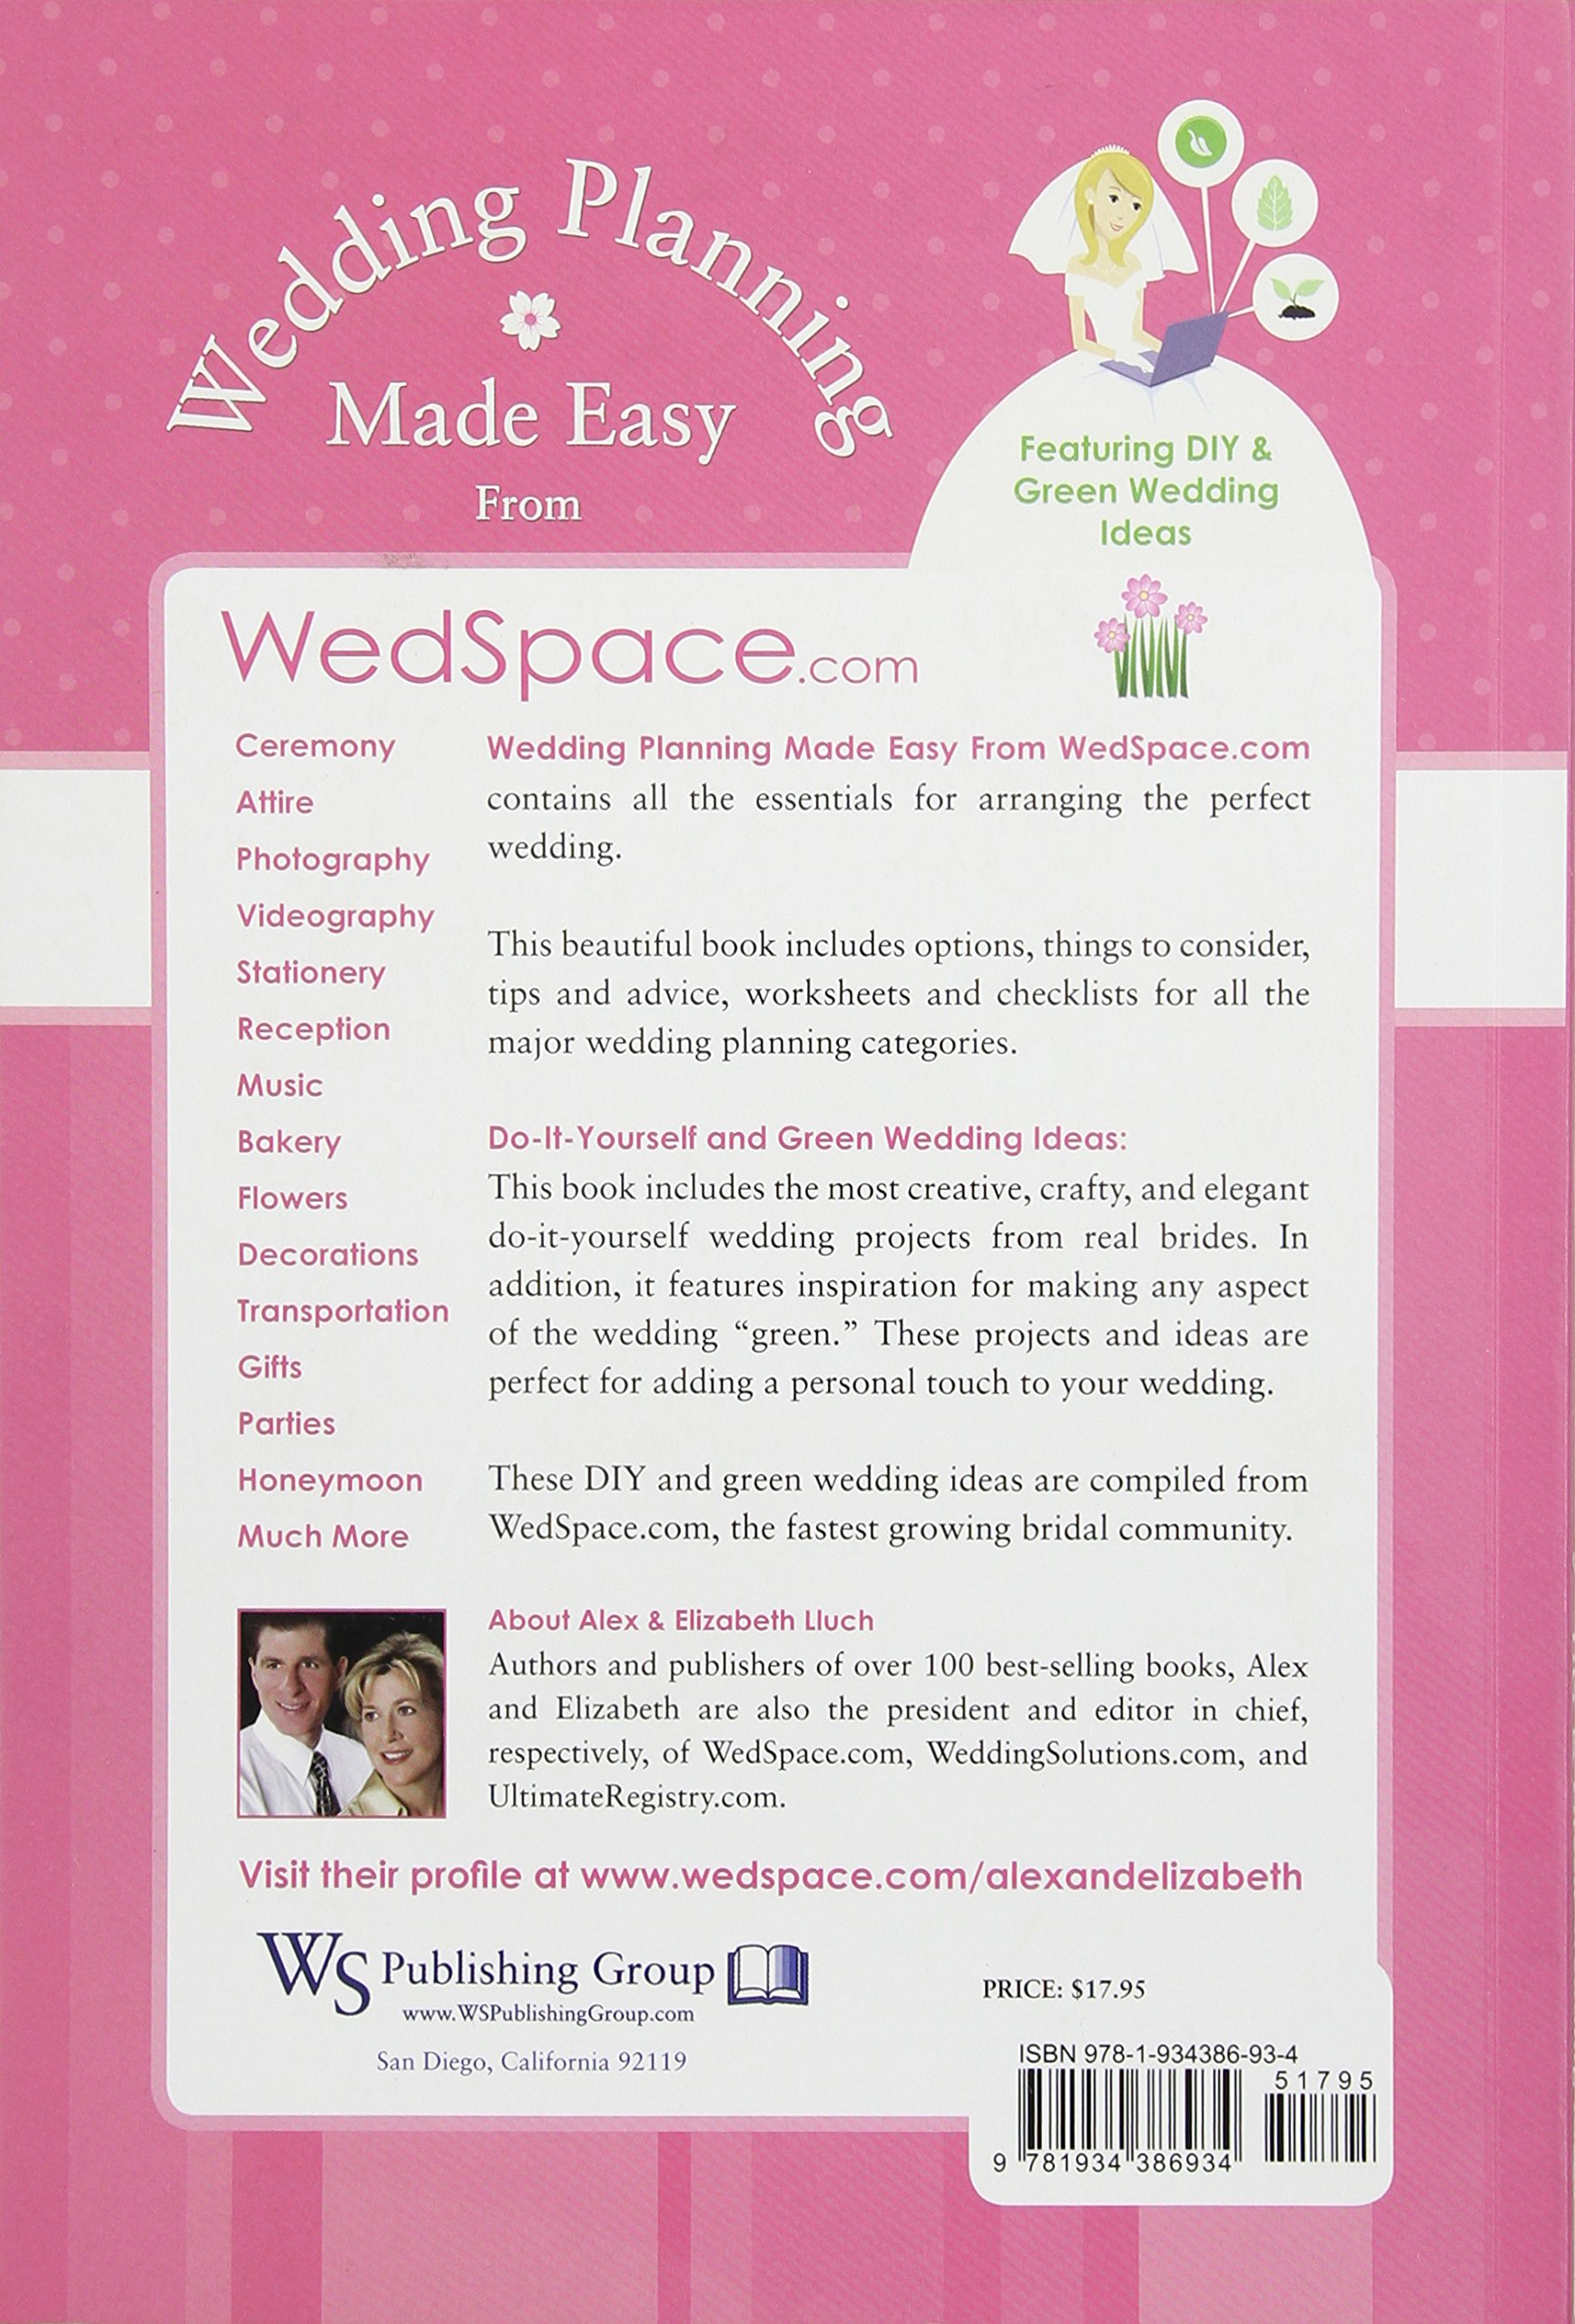 Wedding planning made easy from wedspace featuring diy and wedding planning made easy from wedspace featuring diy and green wedding ideas alex a lluch 9781934386934 amazon books solutioingenieria Image collections